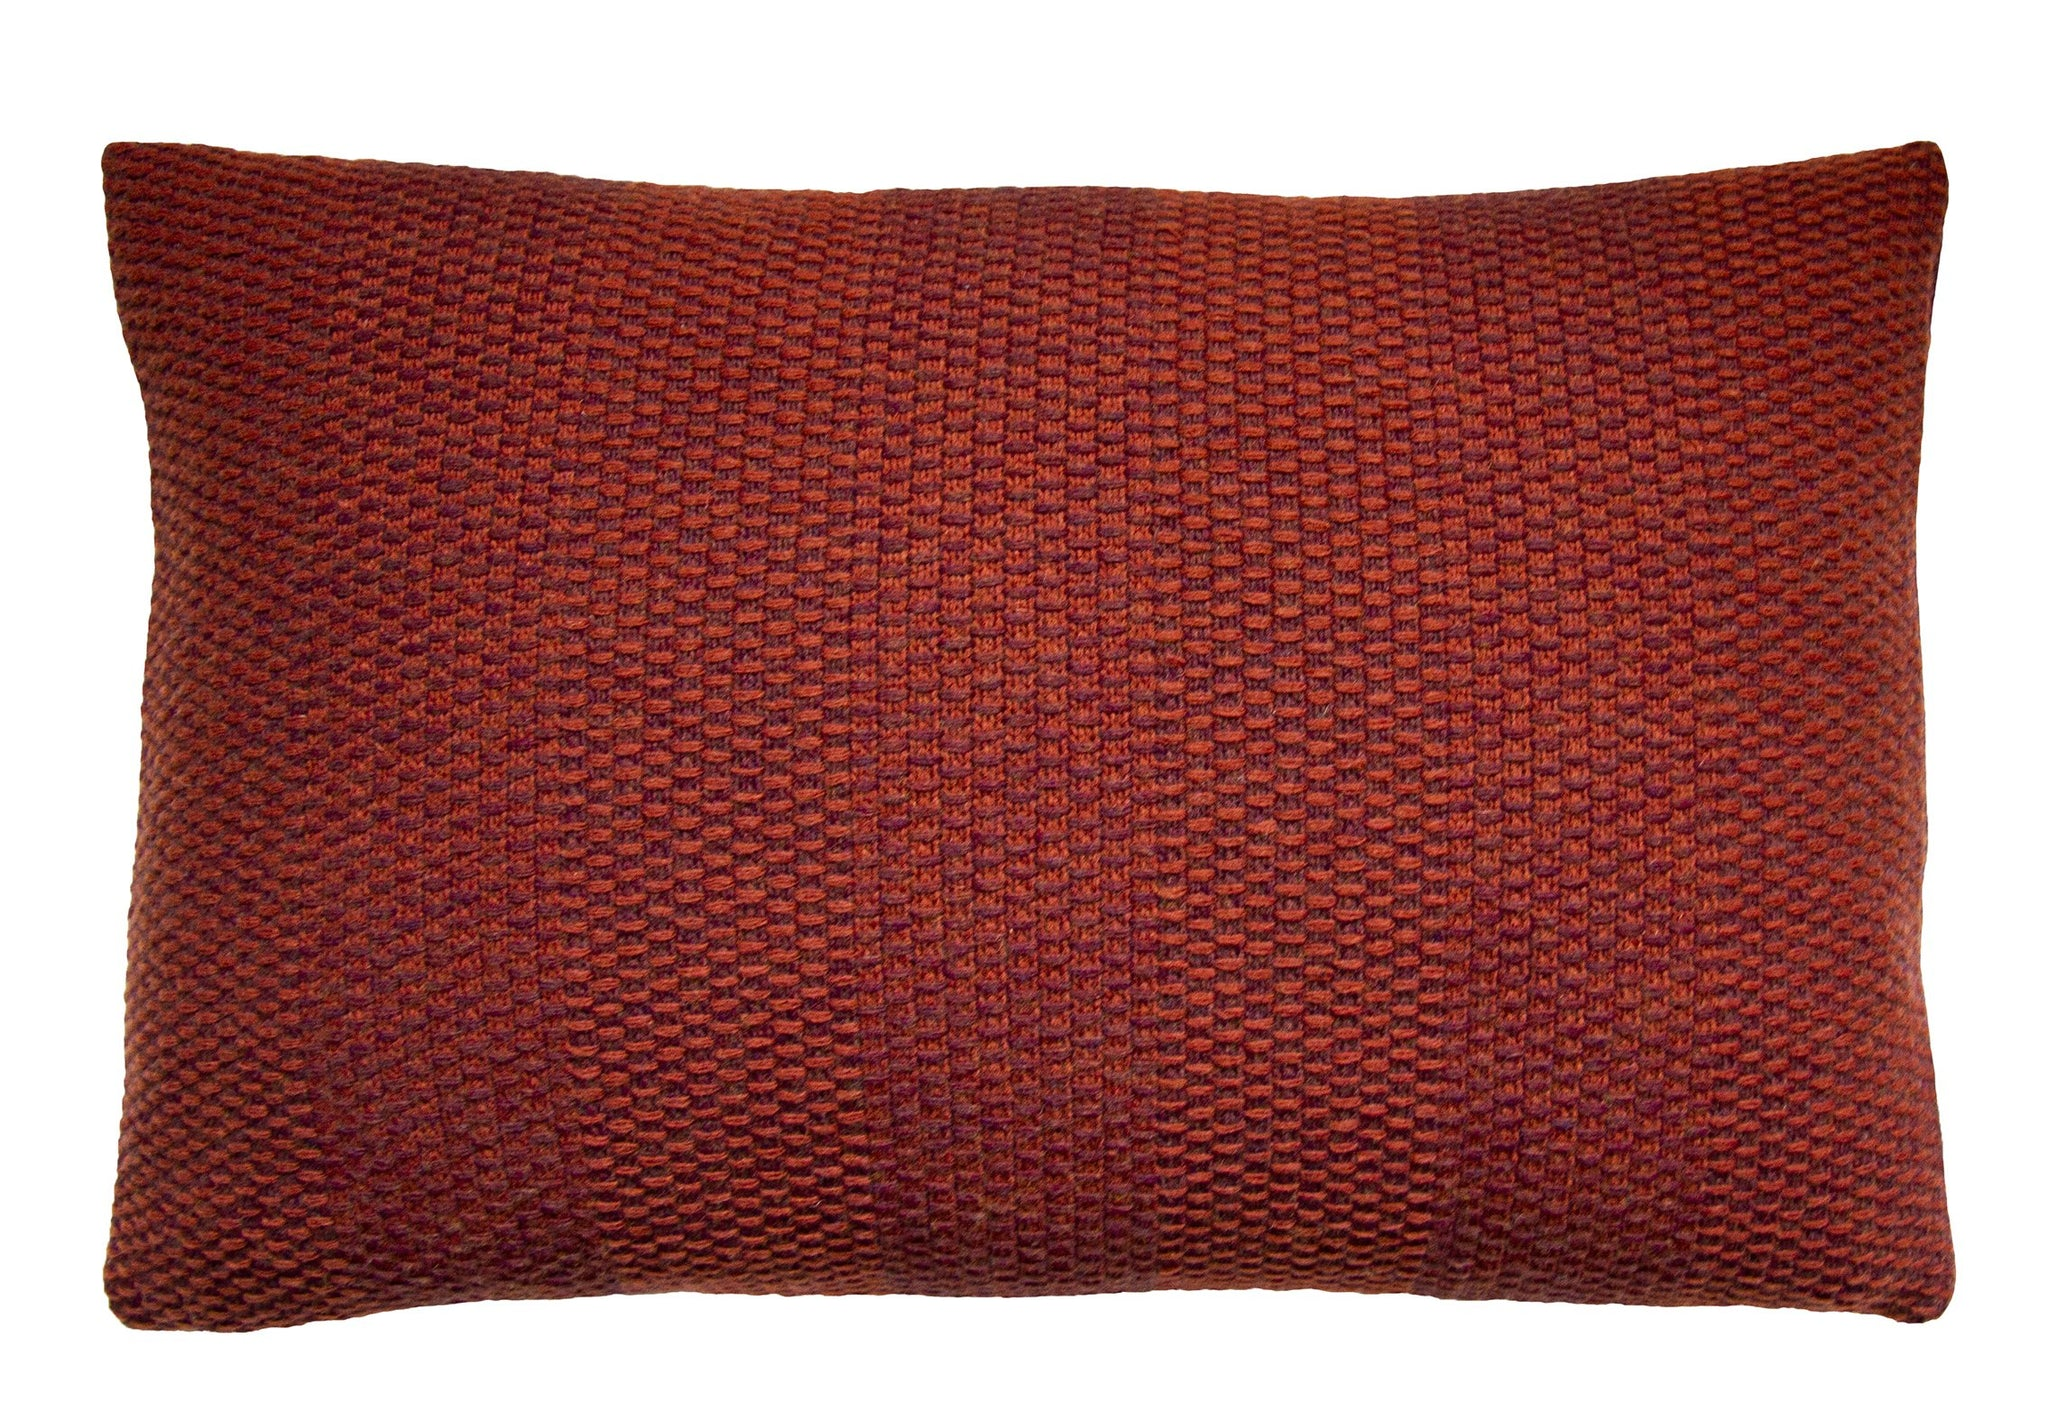 Weave Knit cushion, vineyard